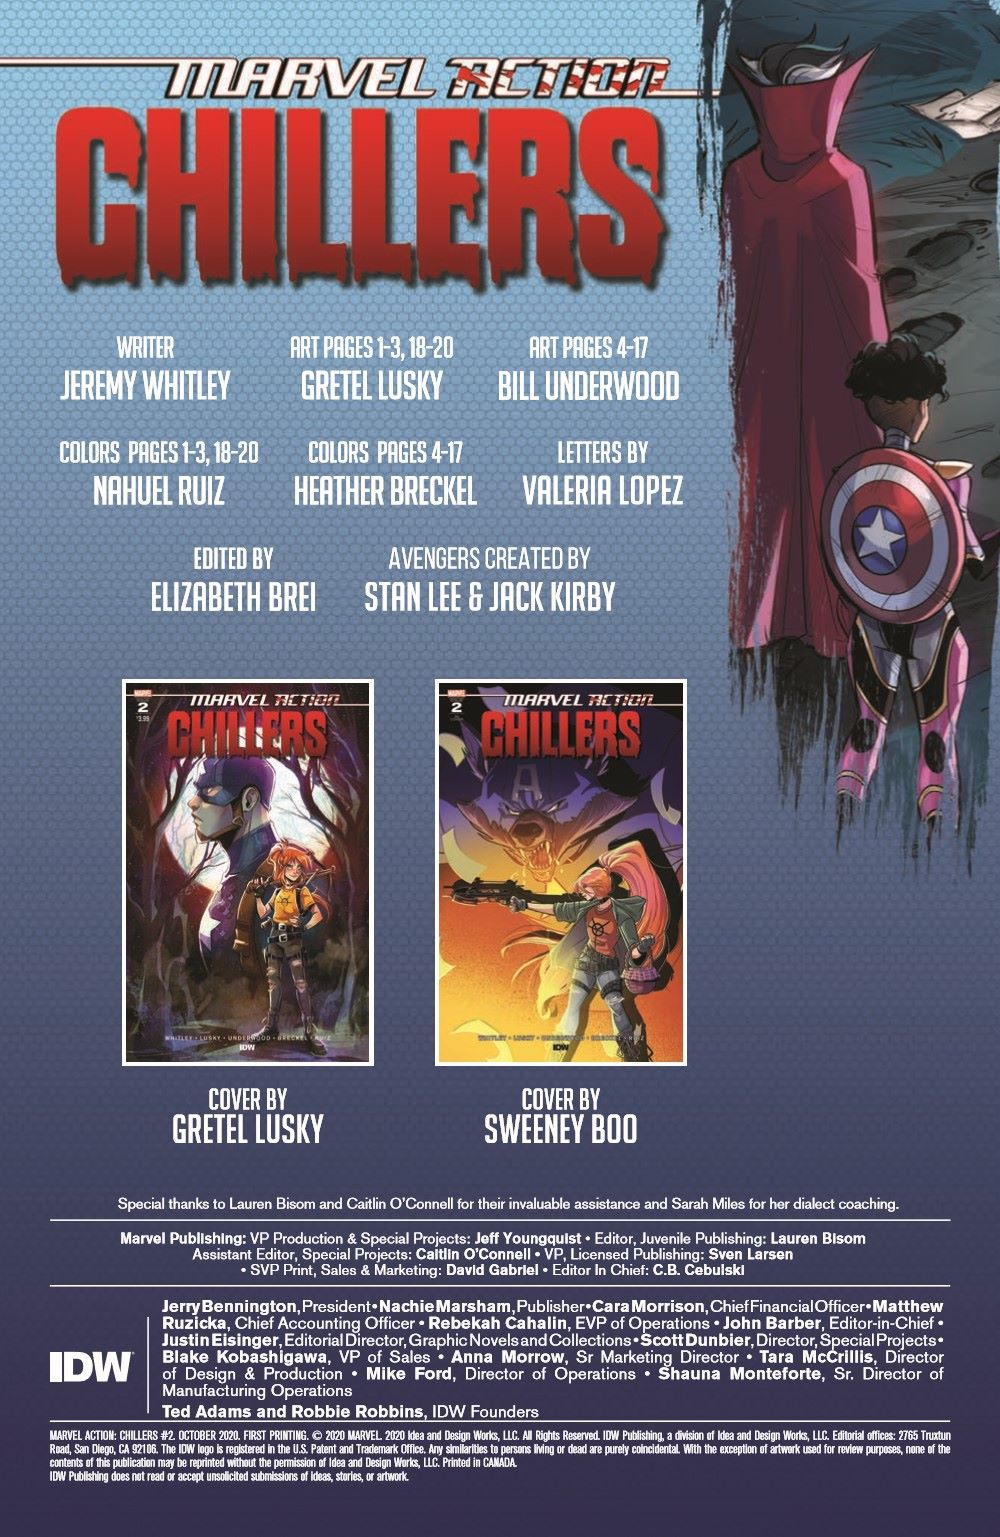 Marvel_Chillers_02-pr-2 ComicList Previews: MARVEL ACTION CHILLERS #2